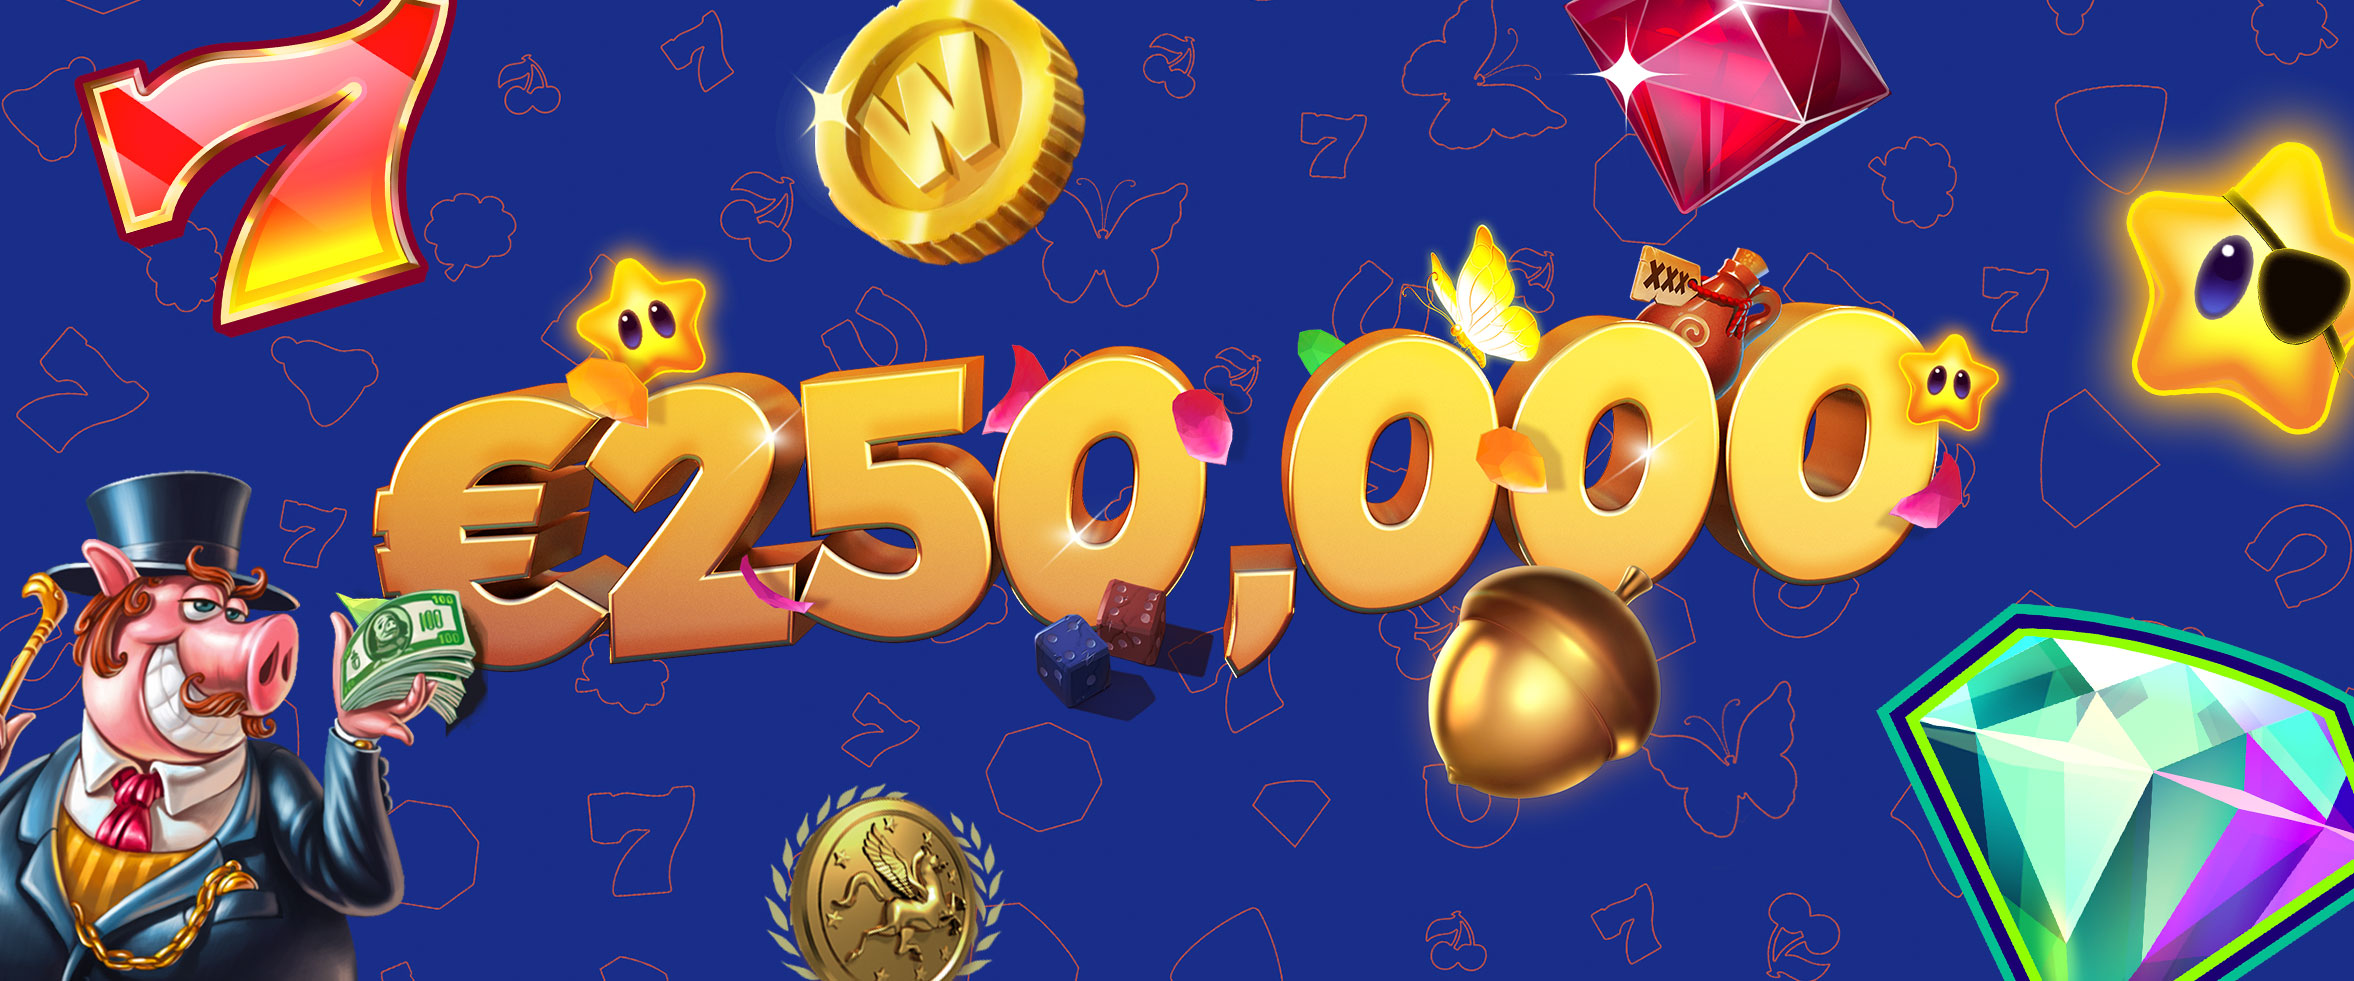 Win your share of €250,000